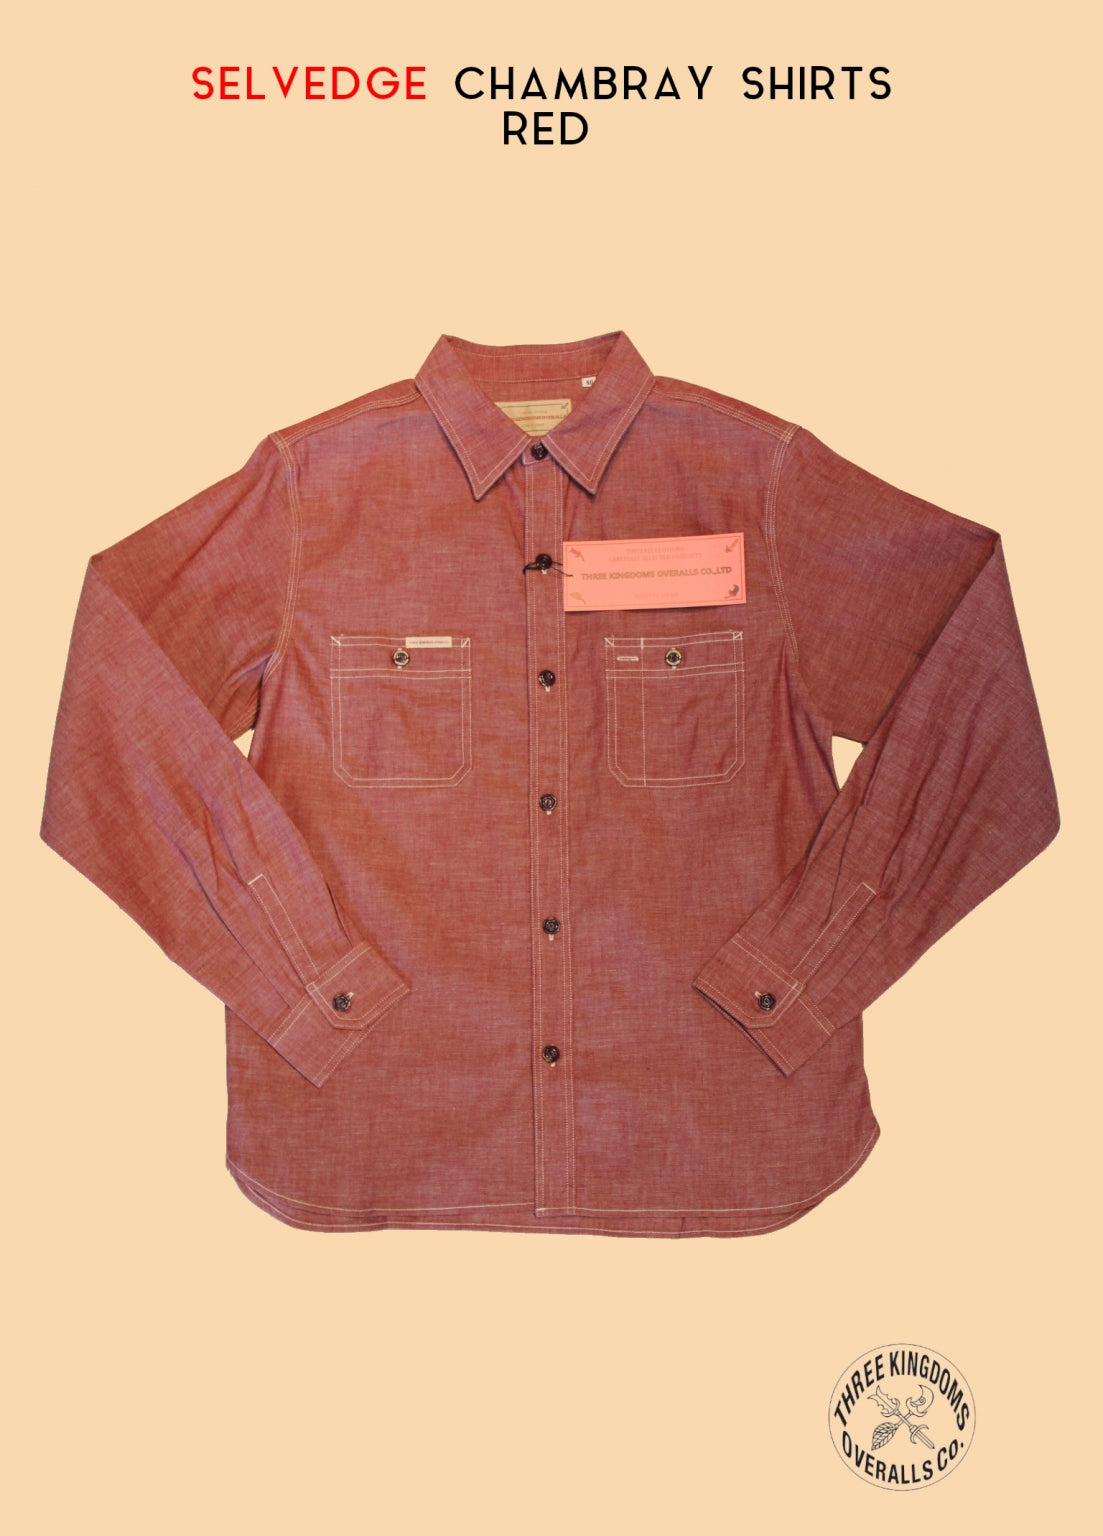 CB01Sr Selvedge Chambray Shirt in Red